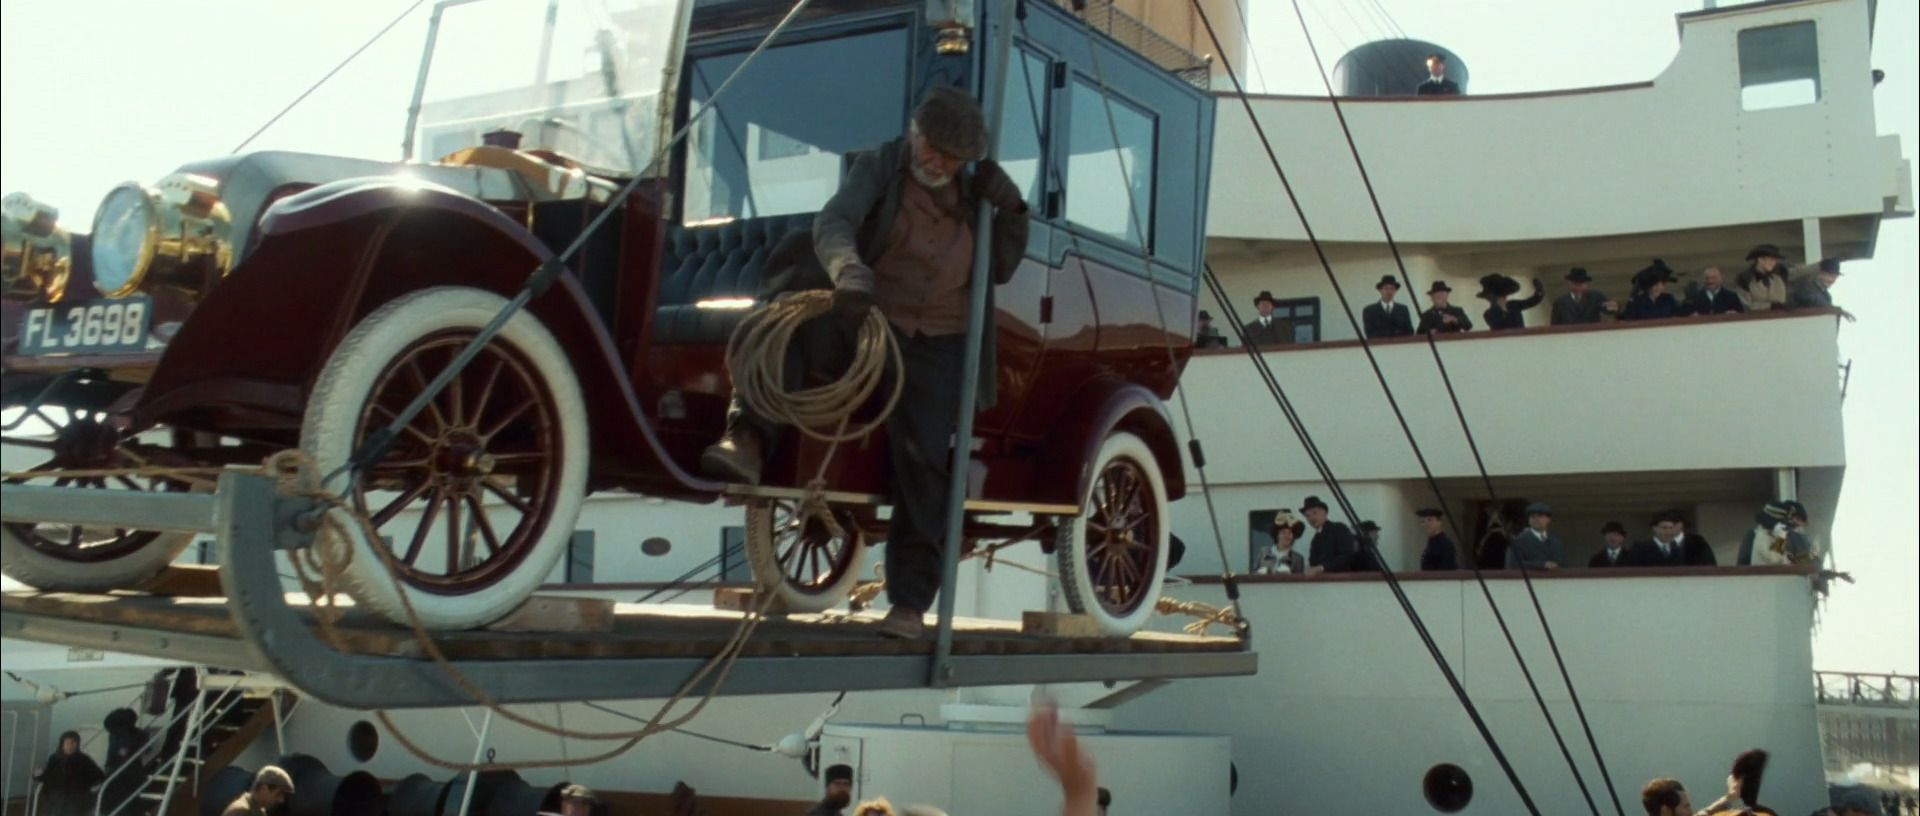 The Renault car being loaded Titanic, Titanic movie, Car